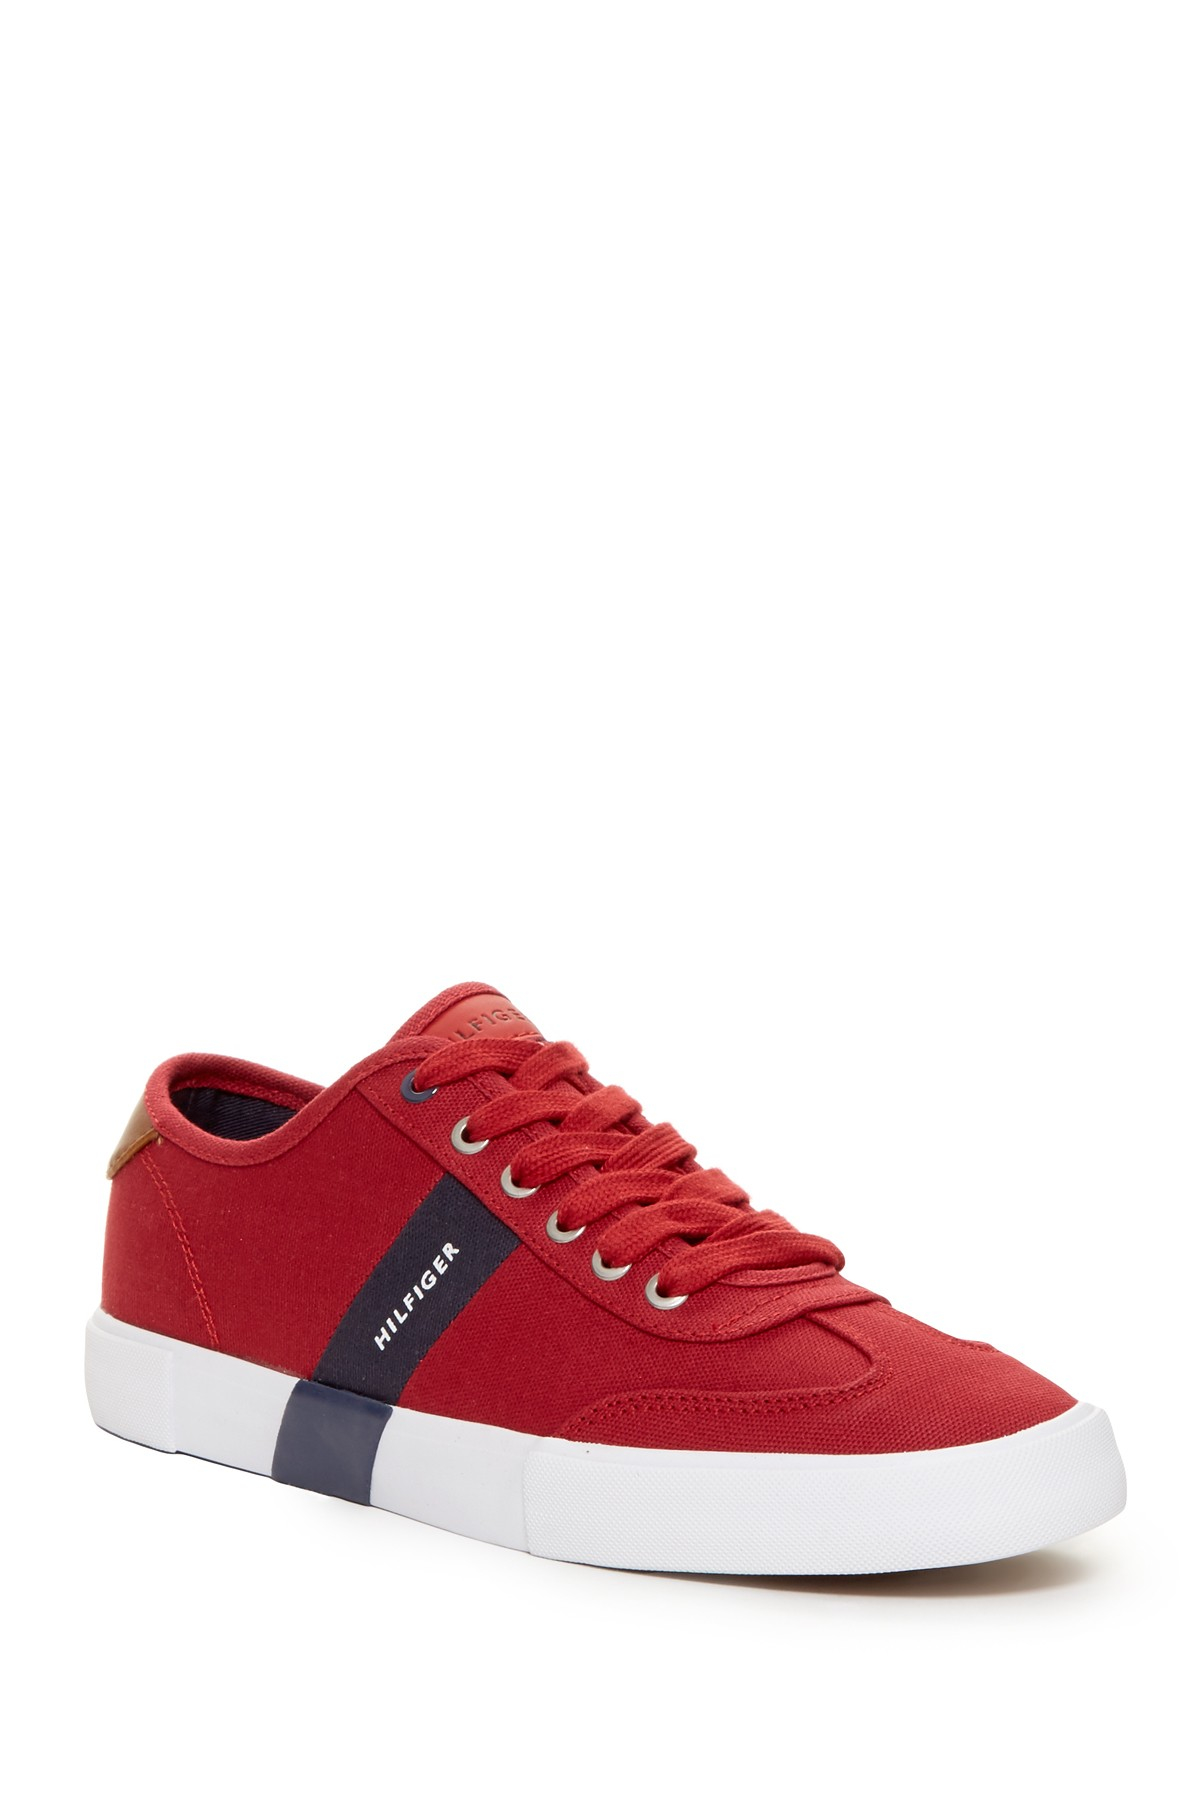 lyst tommy hilfiger pandora sneaker in red for men. Black Bedroom Furniture Sets. Home Design Ideas